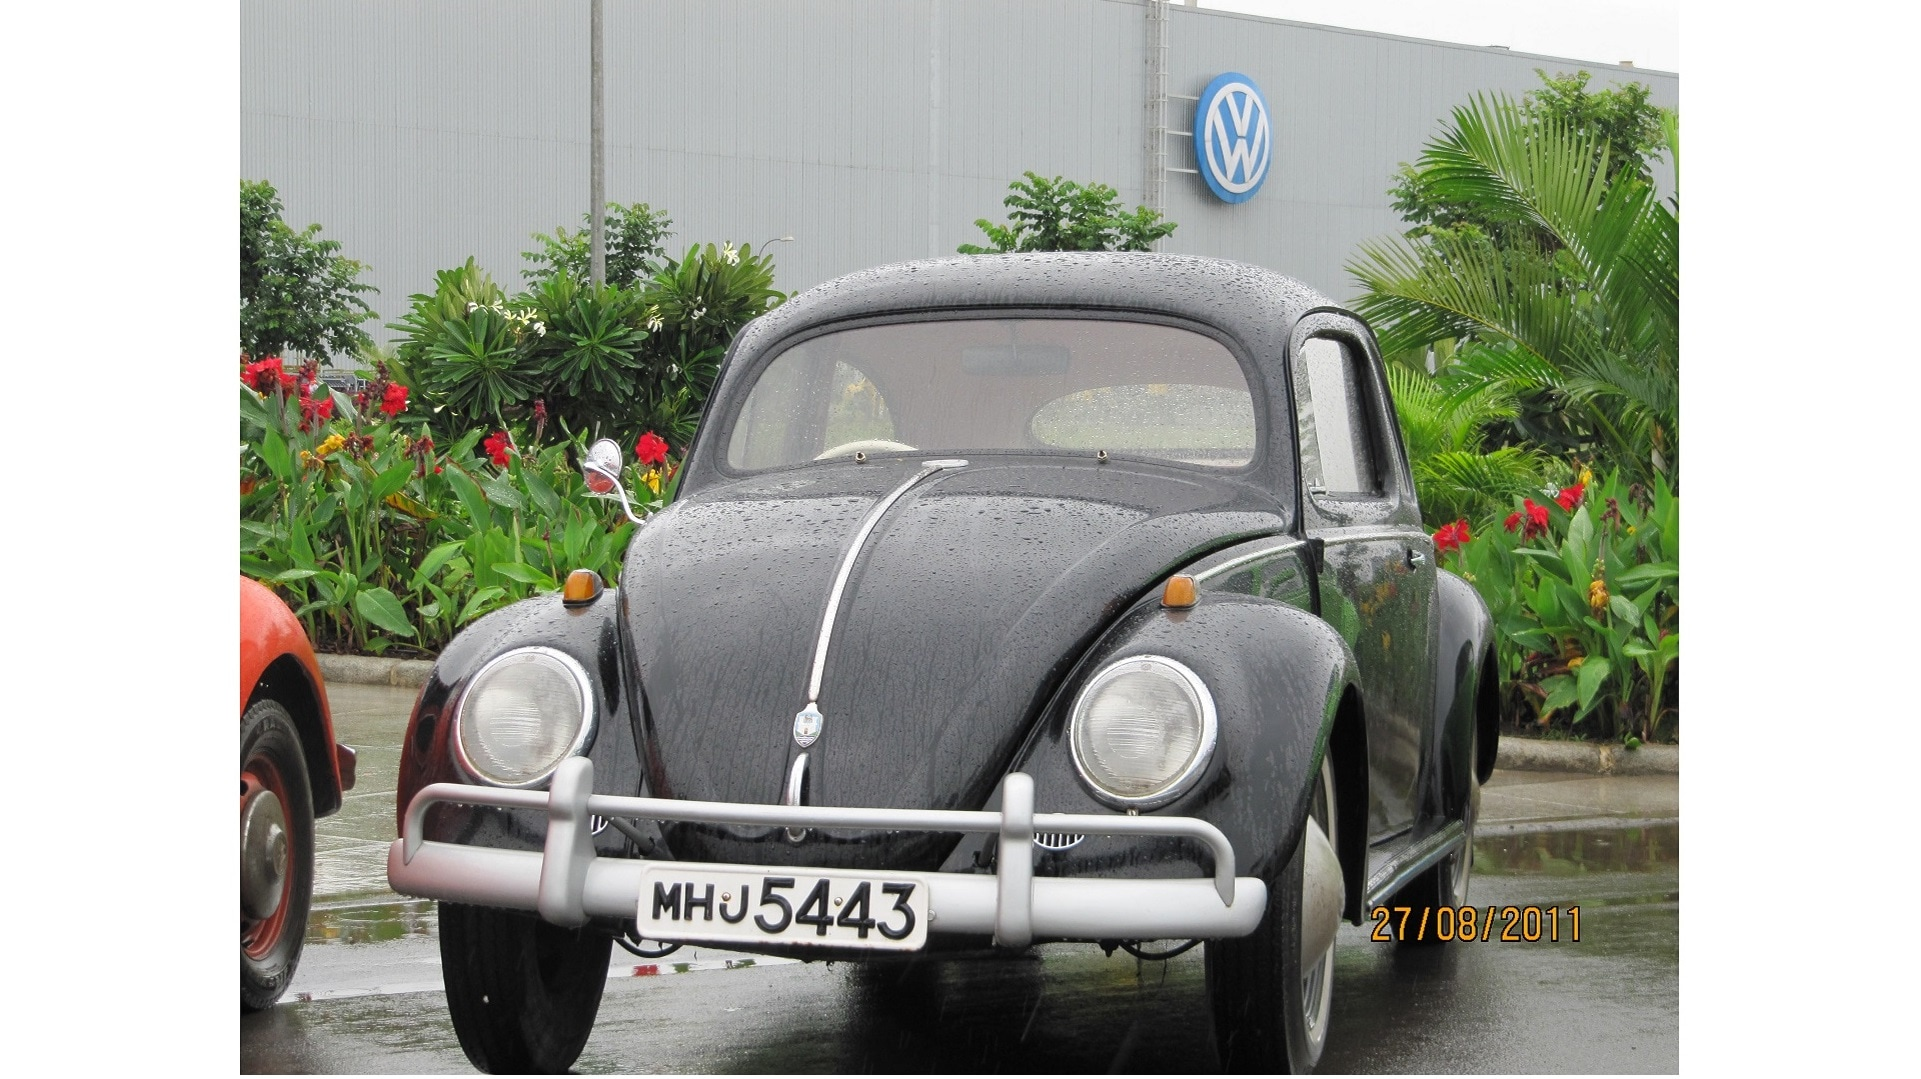 As Volkswagen ceases production of Beetle, Mumbai's 'Bug